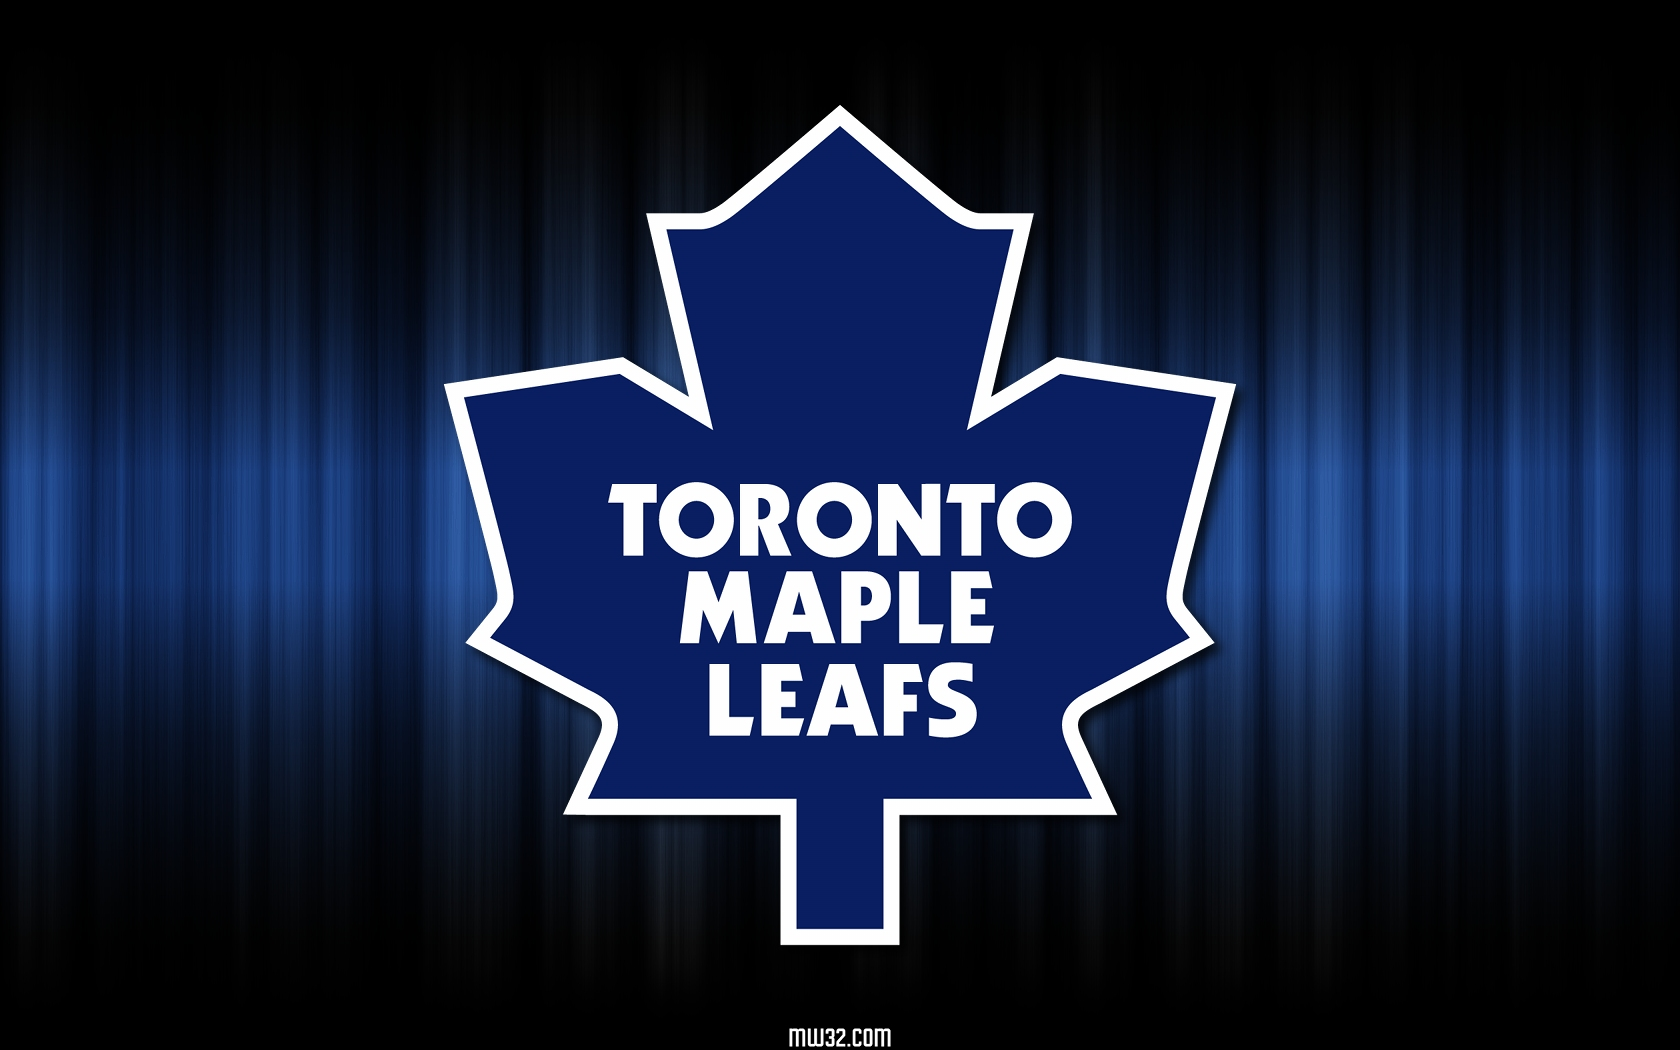 Toronto Maple Leafs Wallpapers Toronto Maple Leafs Toronto Maple Leafs 1680x1050 Download Hd Wallpaper Wallpapertip